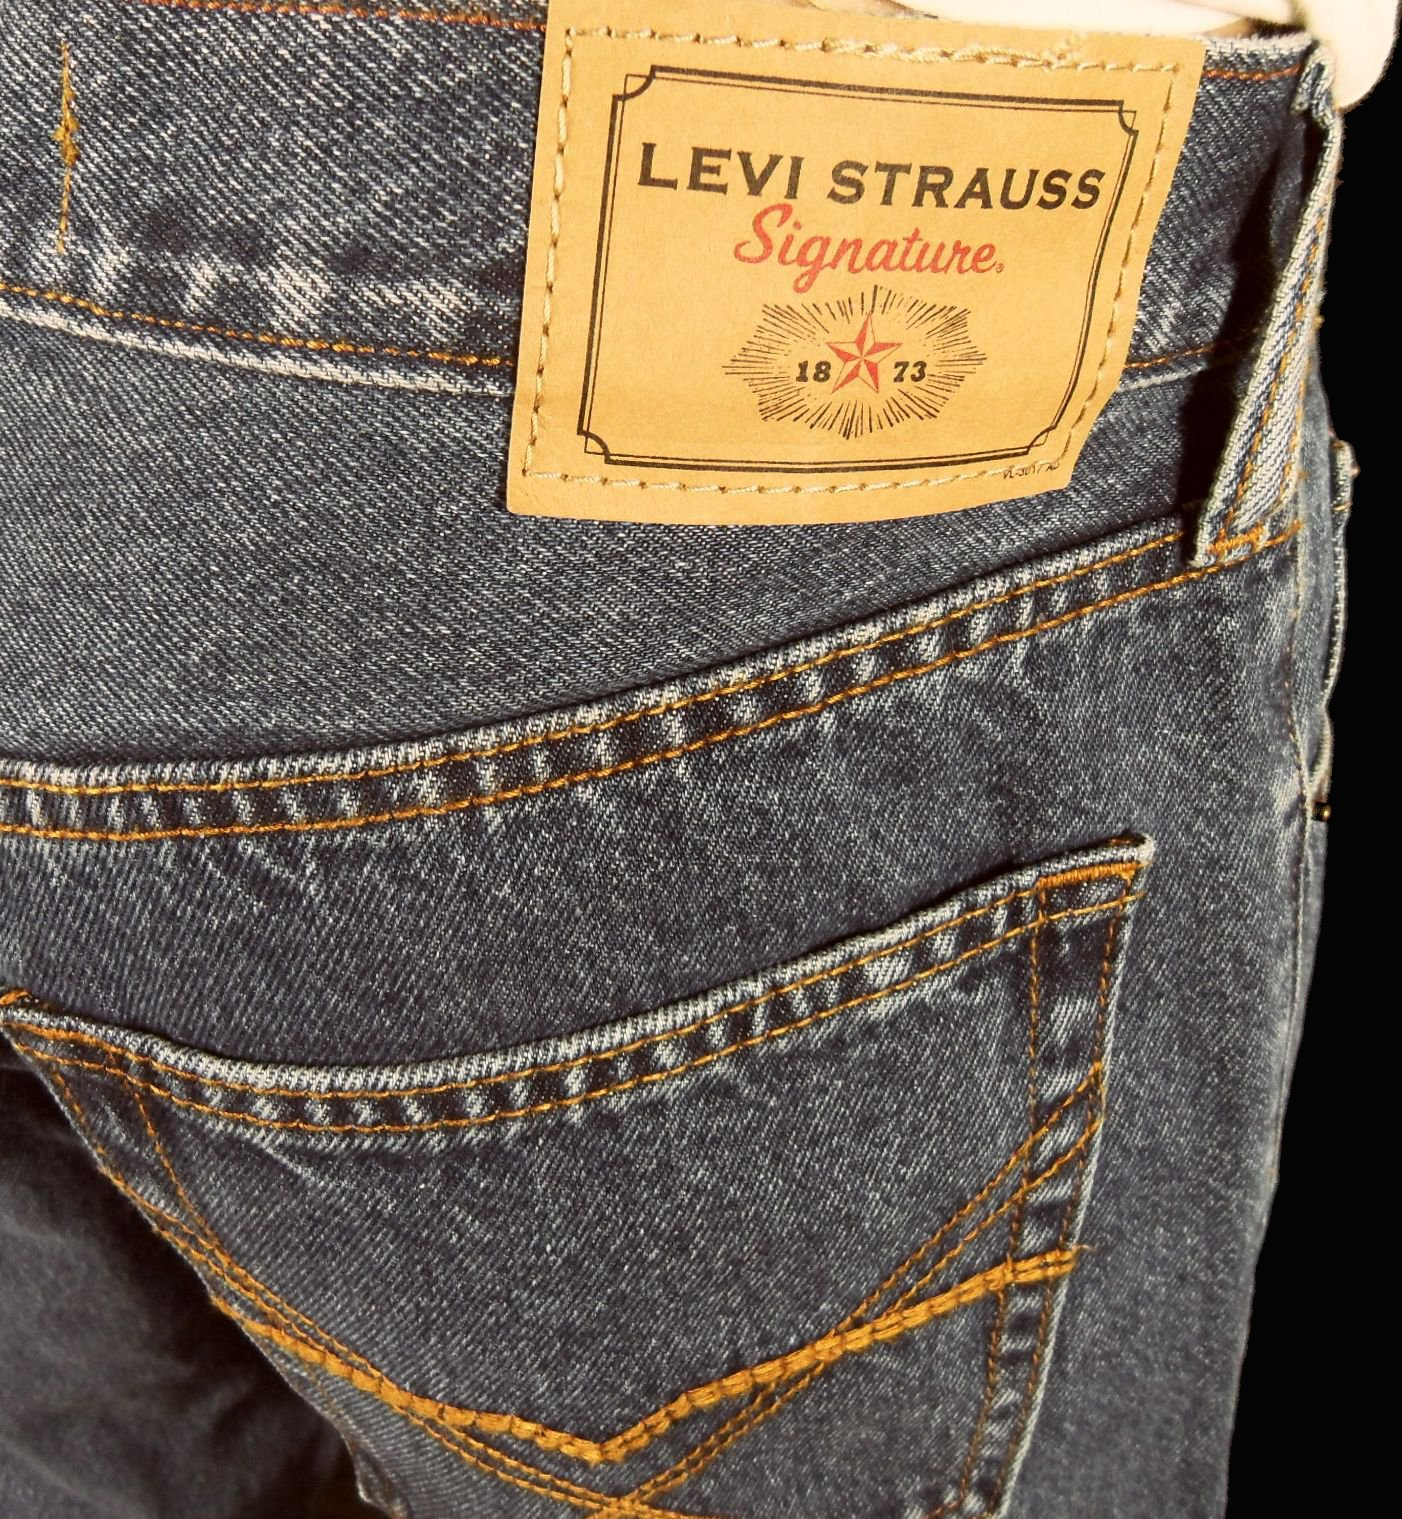 case 5 2 levi strauss at home and abroad As an adolescent, i became interested in the field of psychology my interests in psychological topics resembled those of most american adolescents—curiosity about my own personality, emotions, family relations, ambitions, and anxieties.